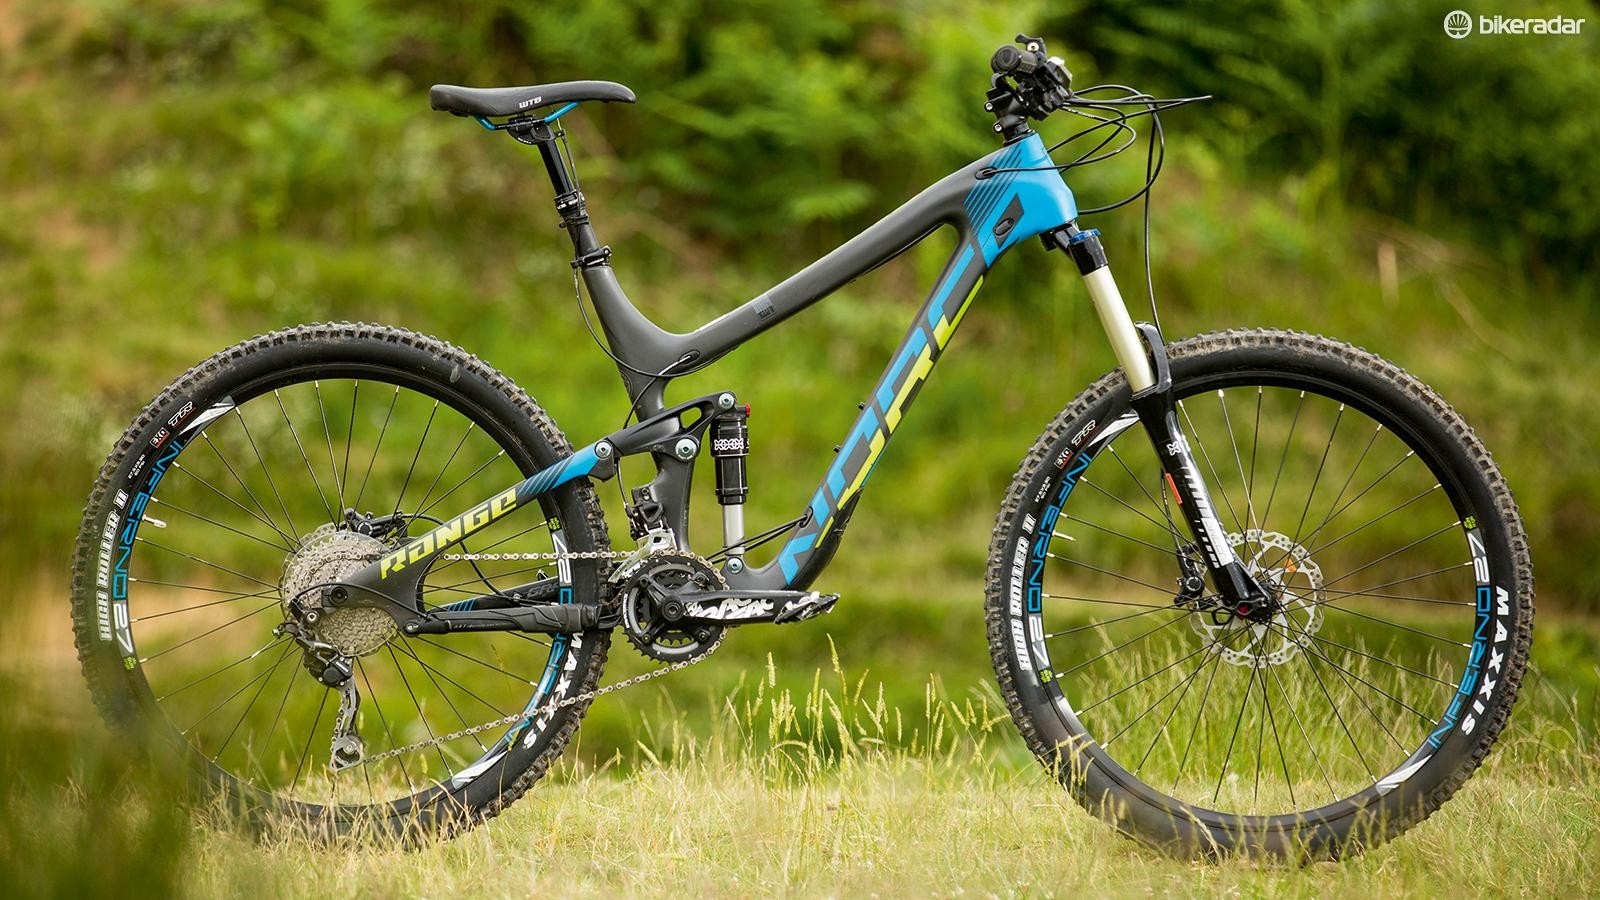 The Norco Range Carbon 7.4's chassis makes it a tempting offer on paper